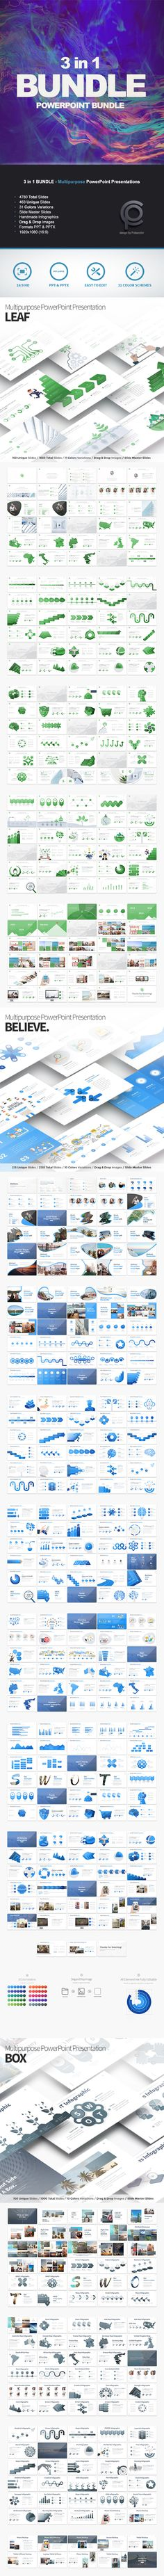 BUNDLE 3 in1  Multipurpose PowerPoint Presentations — Layered PSD #clean #marketing • Download ➝ https://graphicriver.net/item/bundle-3in1-multipurpose-powerpoint-presentations/20177994?ref=pxcr